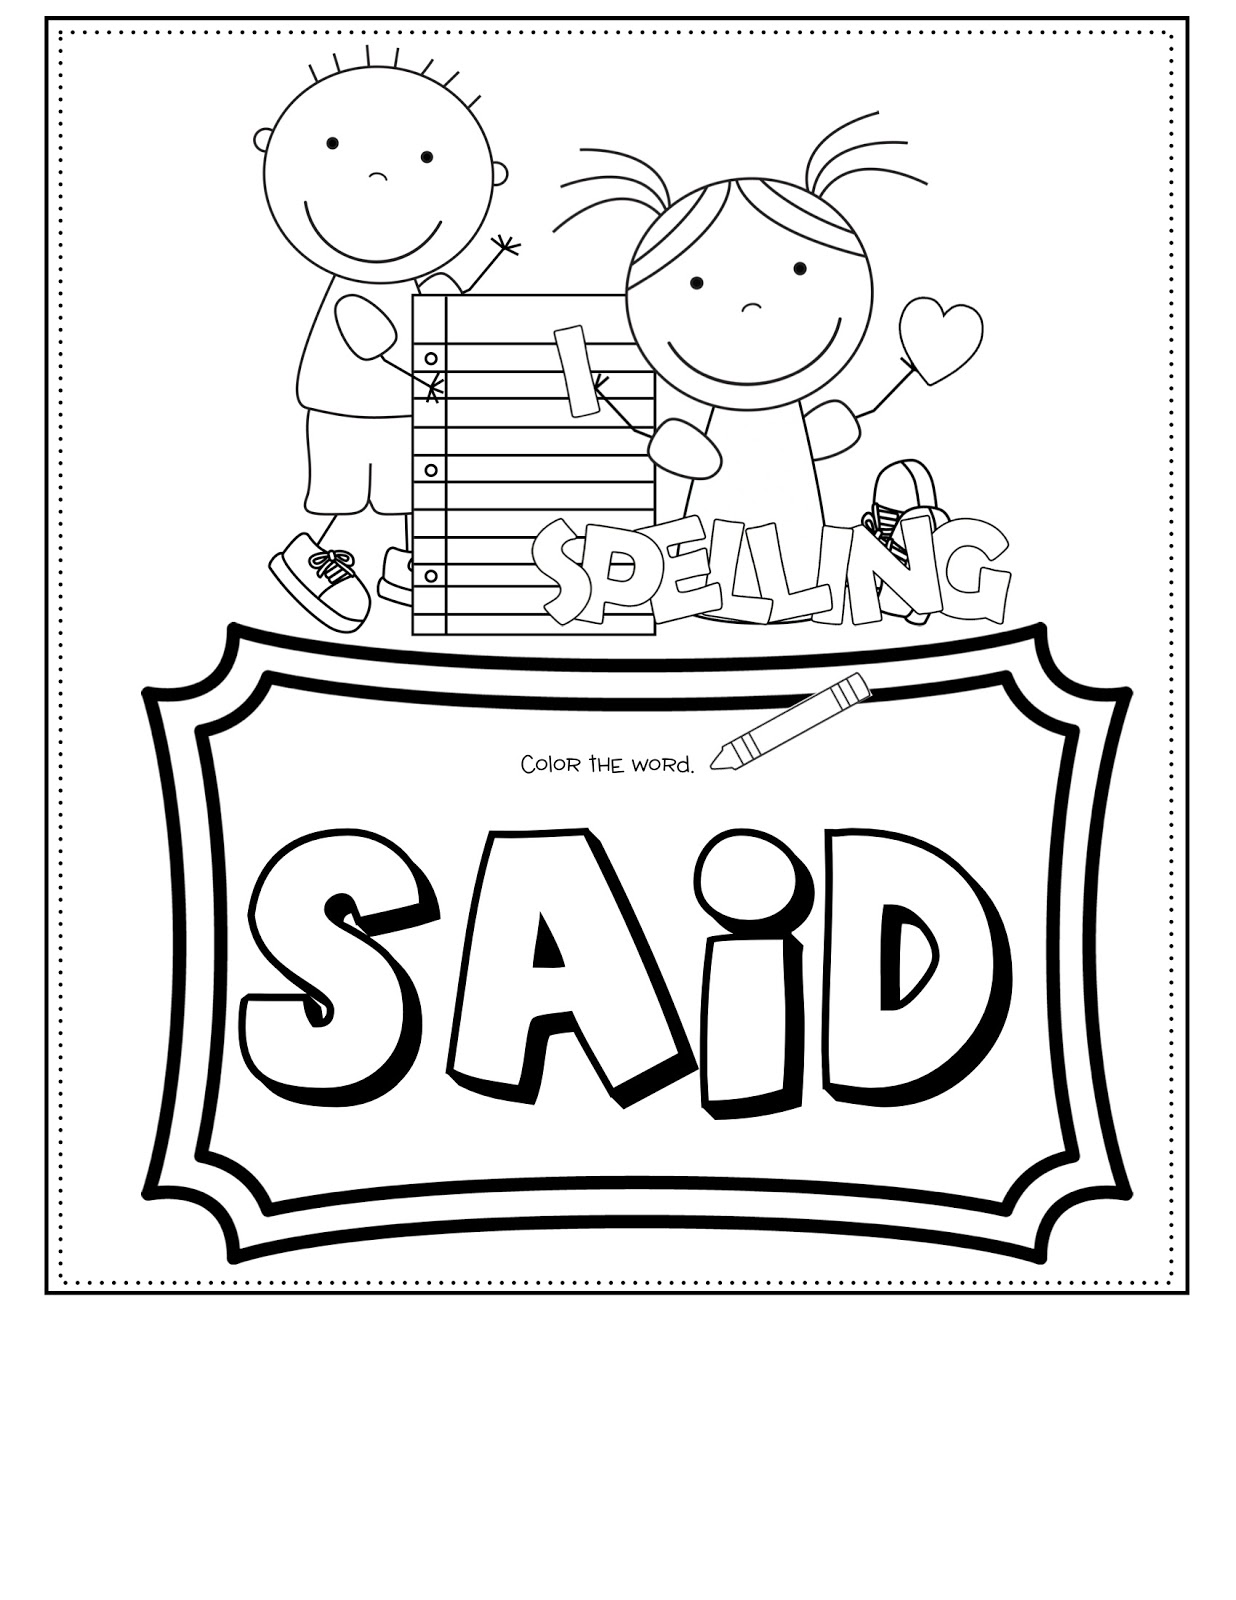 Workbook Sight sight word see Multi Cloud: Word worksheets Task Lesson The